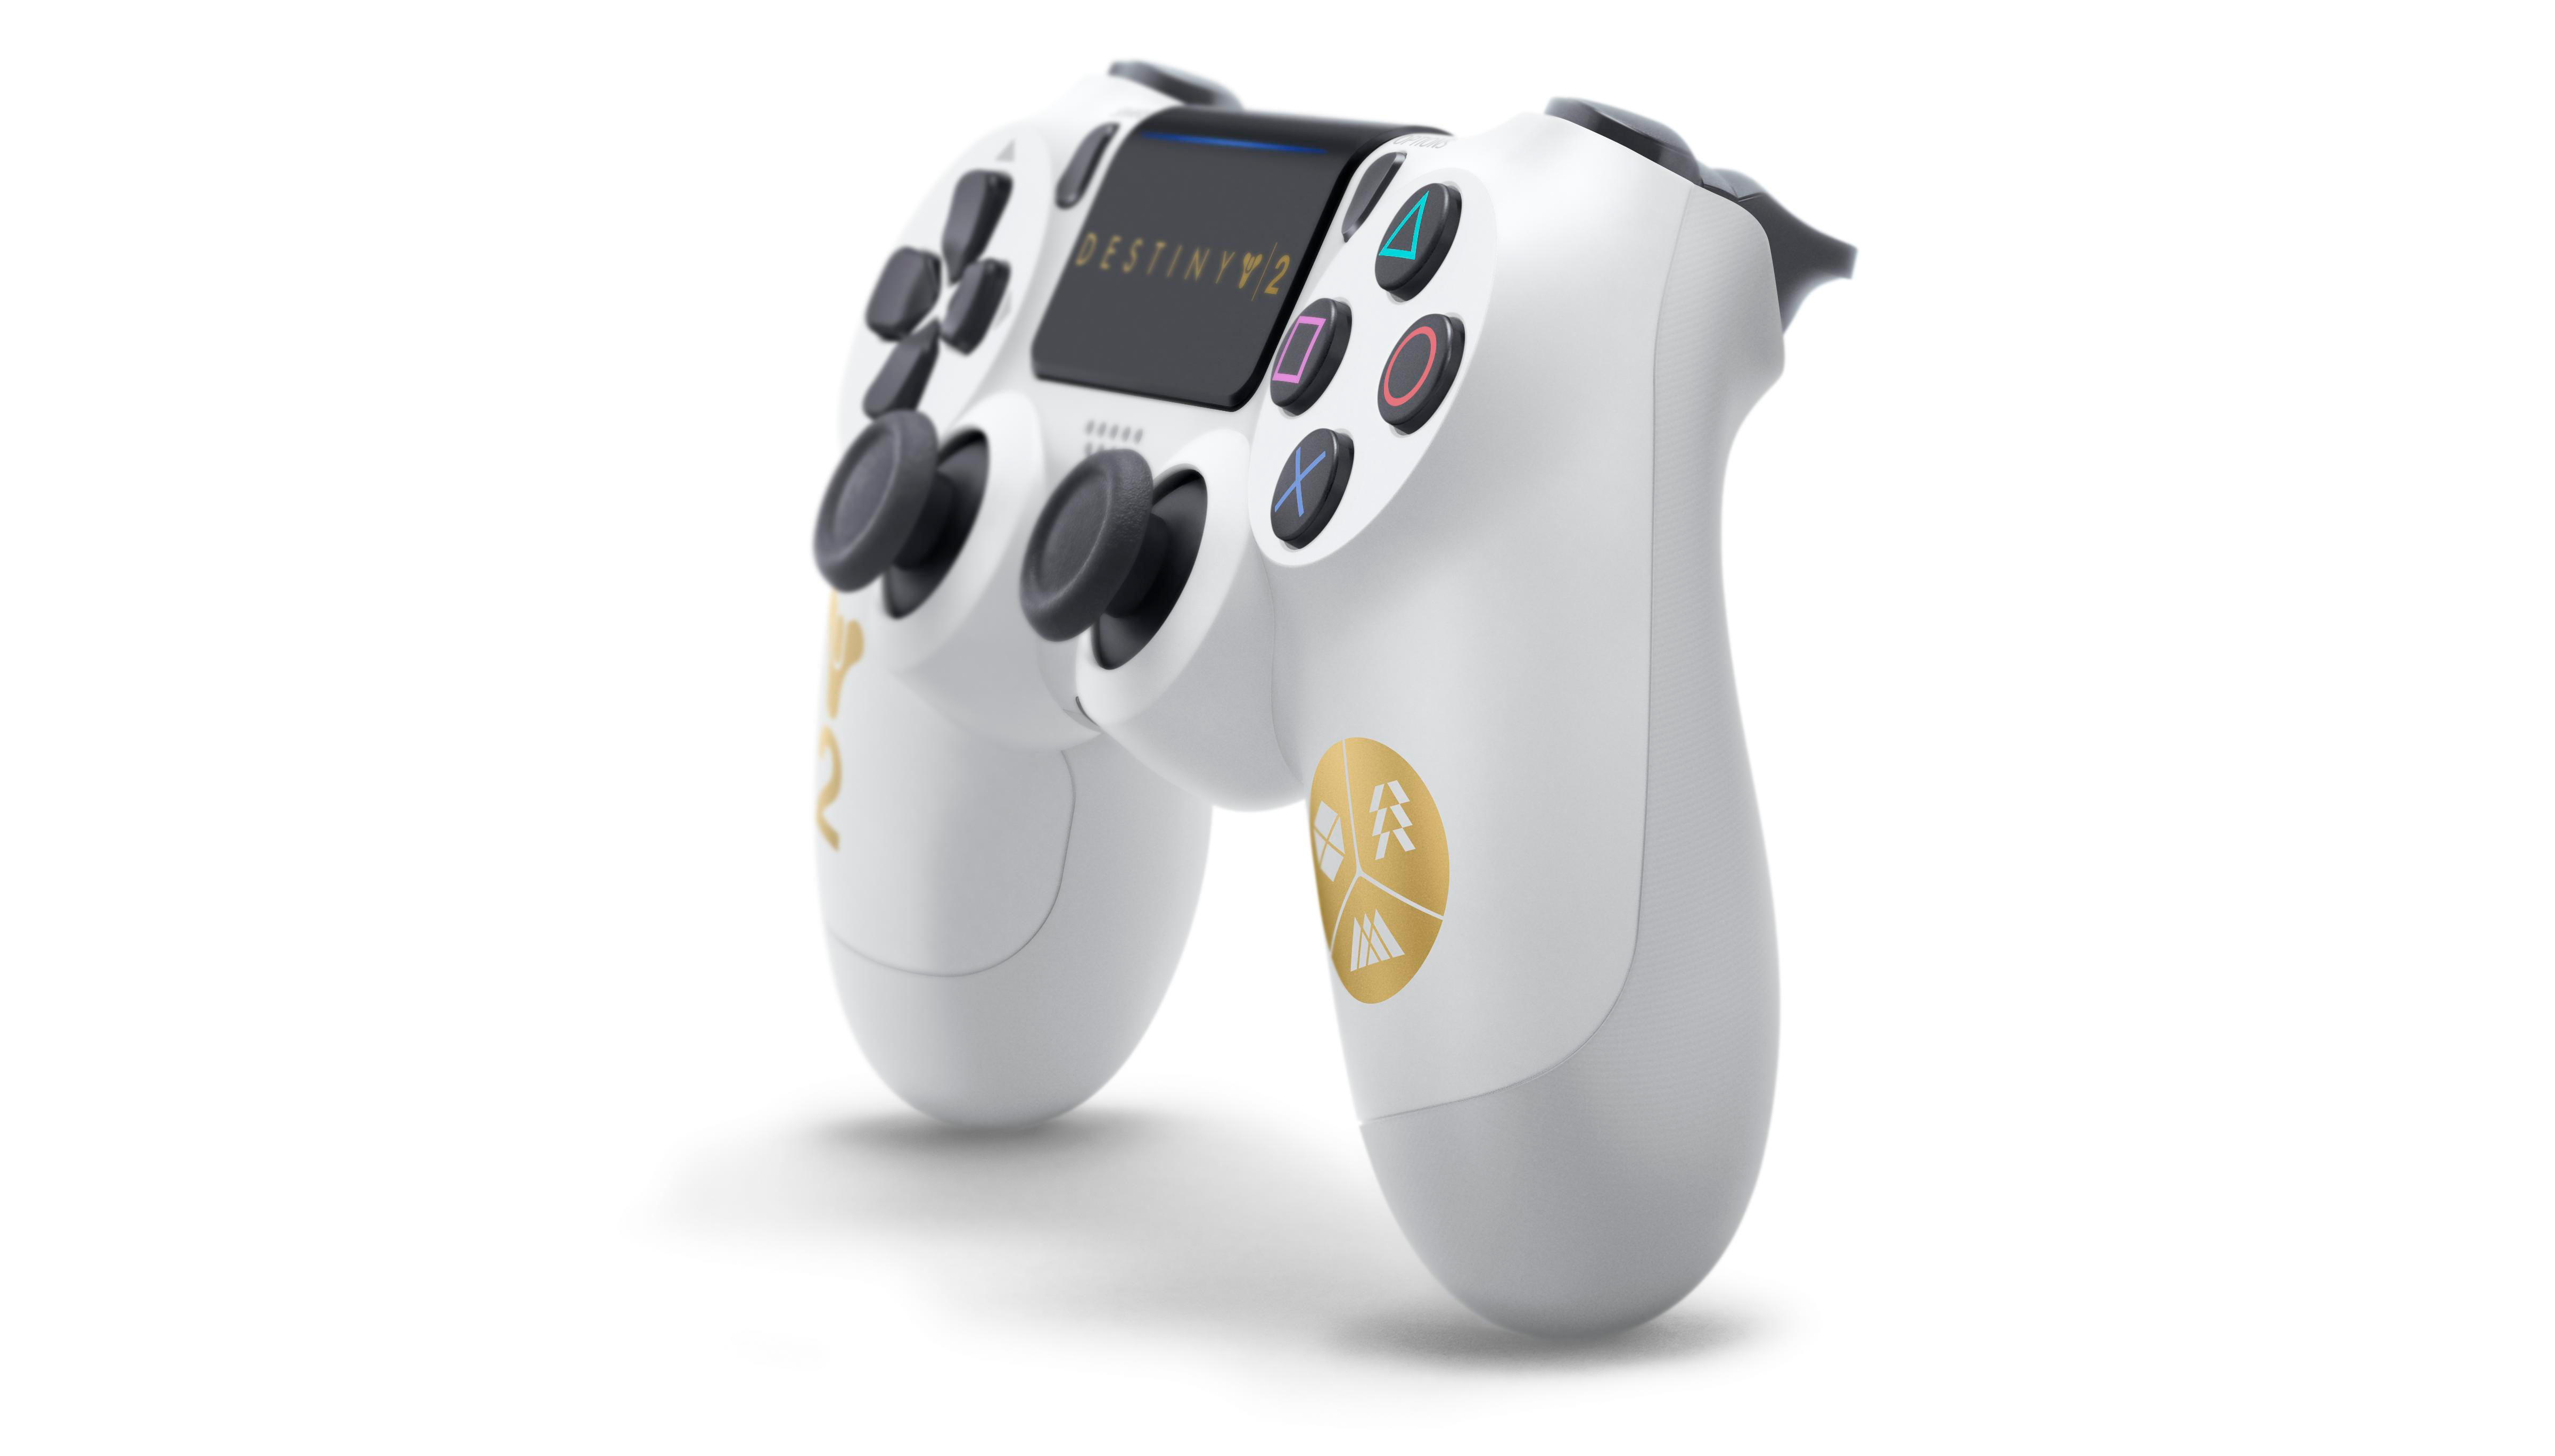 This limited-edition Destiny 2 controller sure is tacky